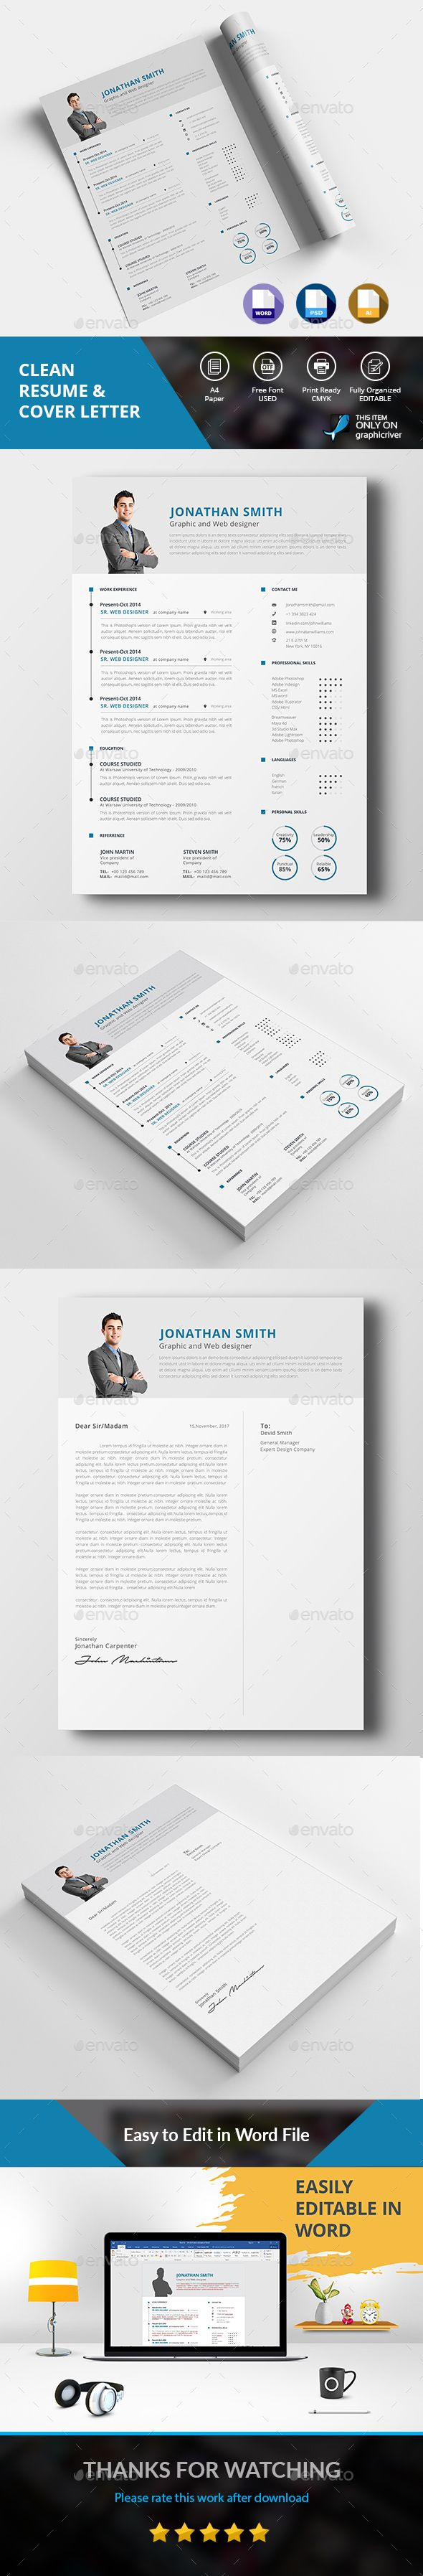 Clean Resume 24 best Resume images on